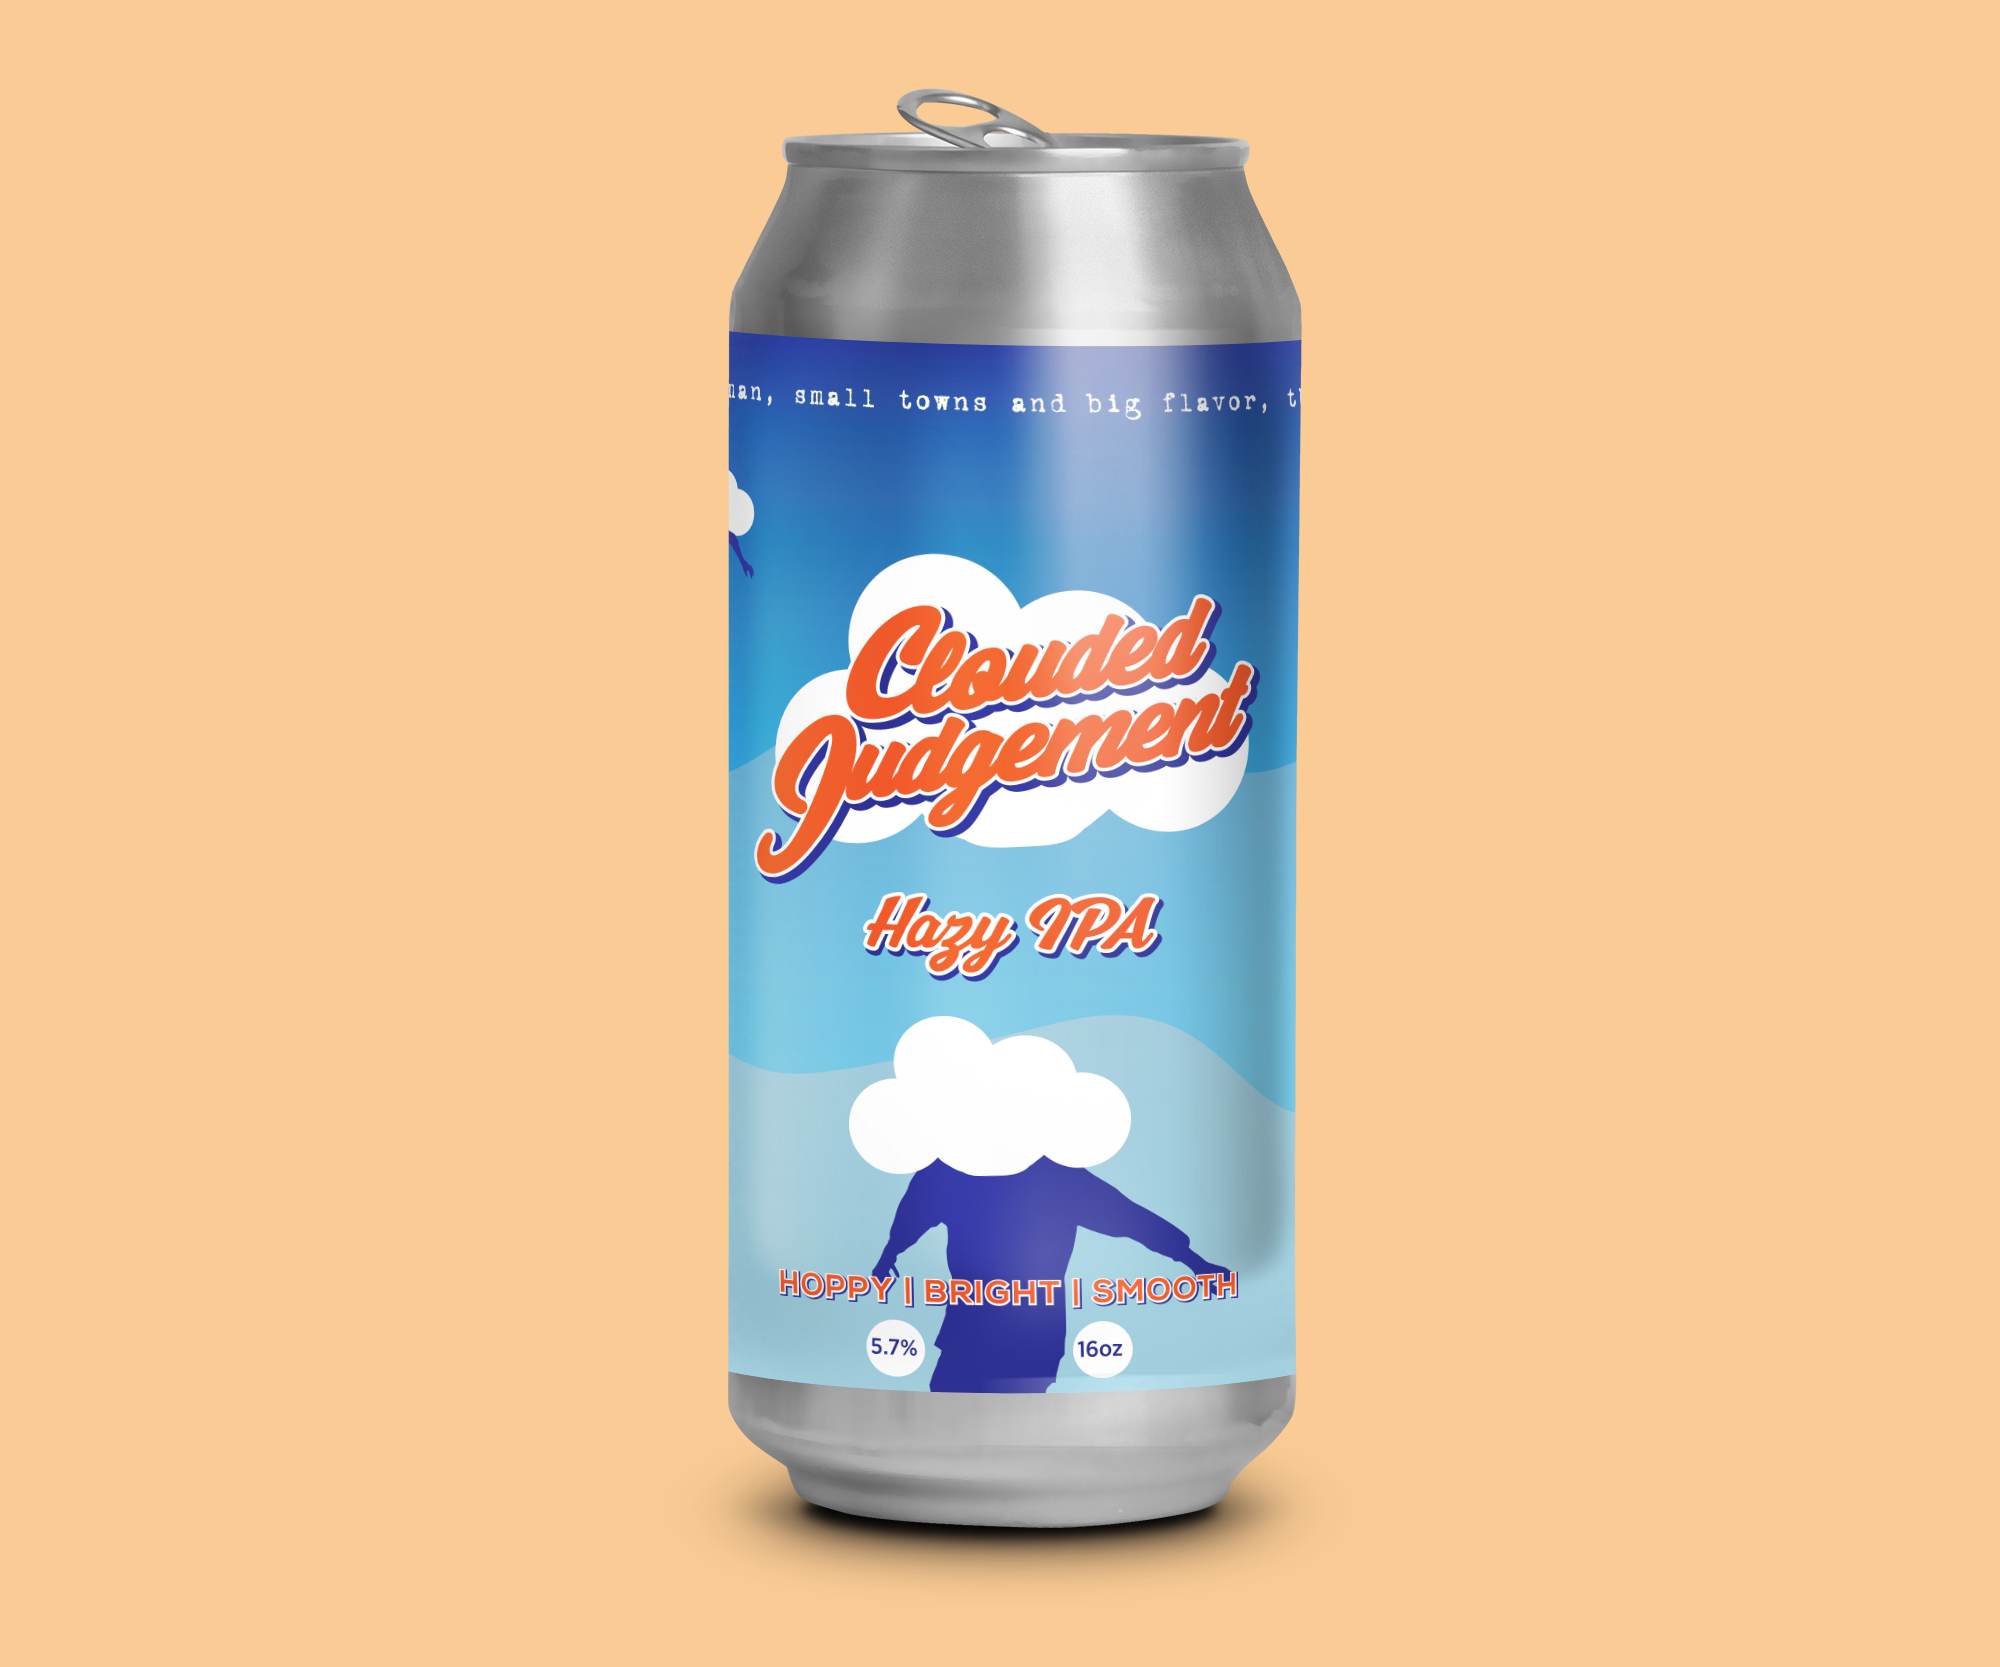 CLOUDED JUDGEMENT   HAZY IPA | 5.7% | 30 IBU  HOPPY | BRIGHT | SMOOTH  DECEMBER 2018